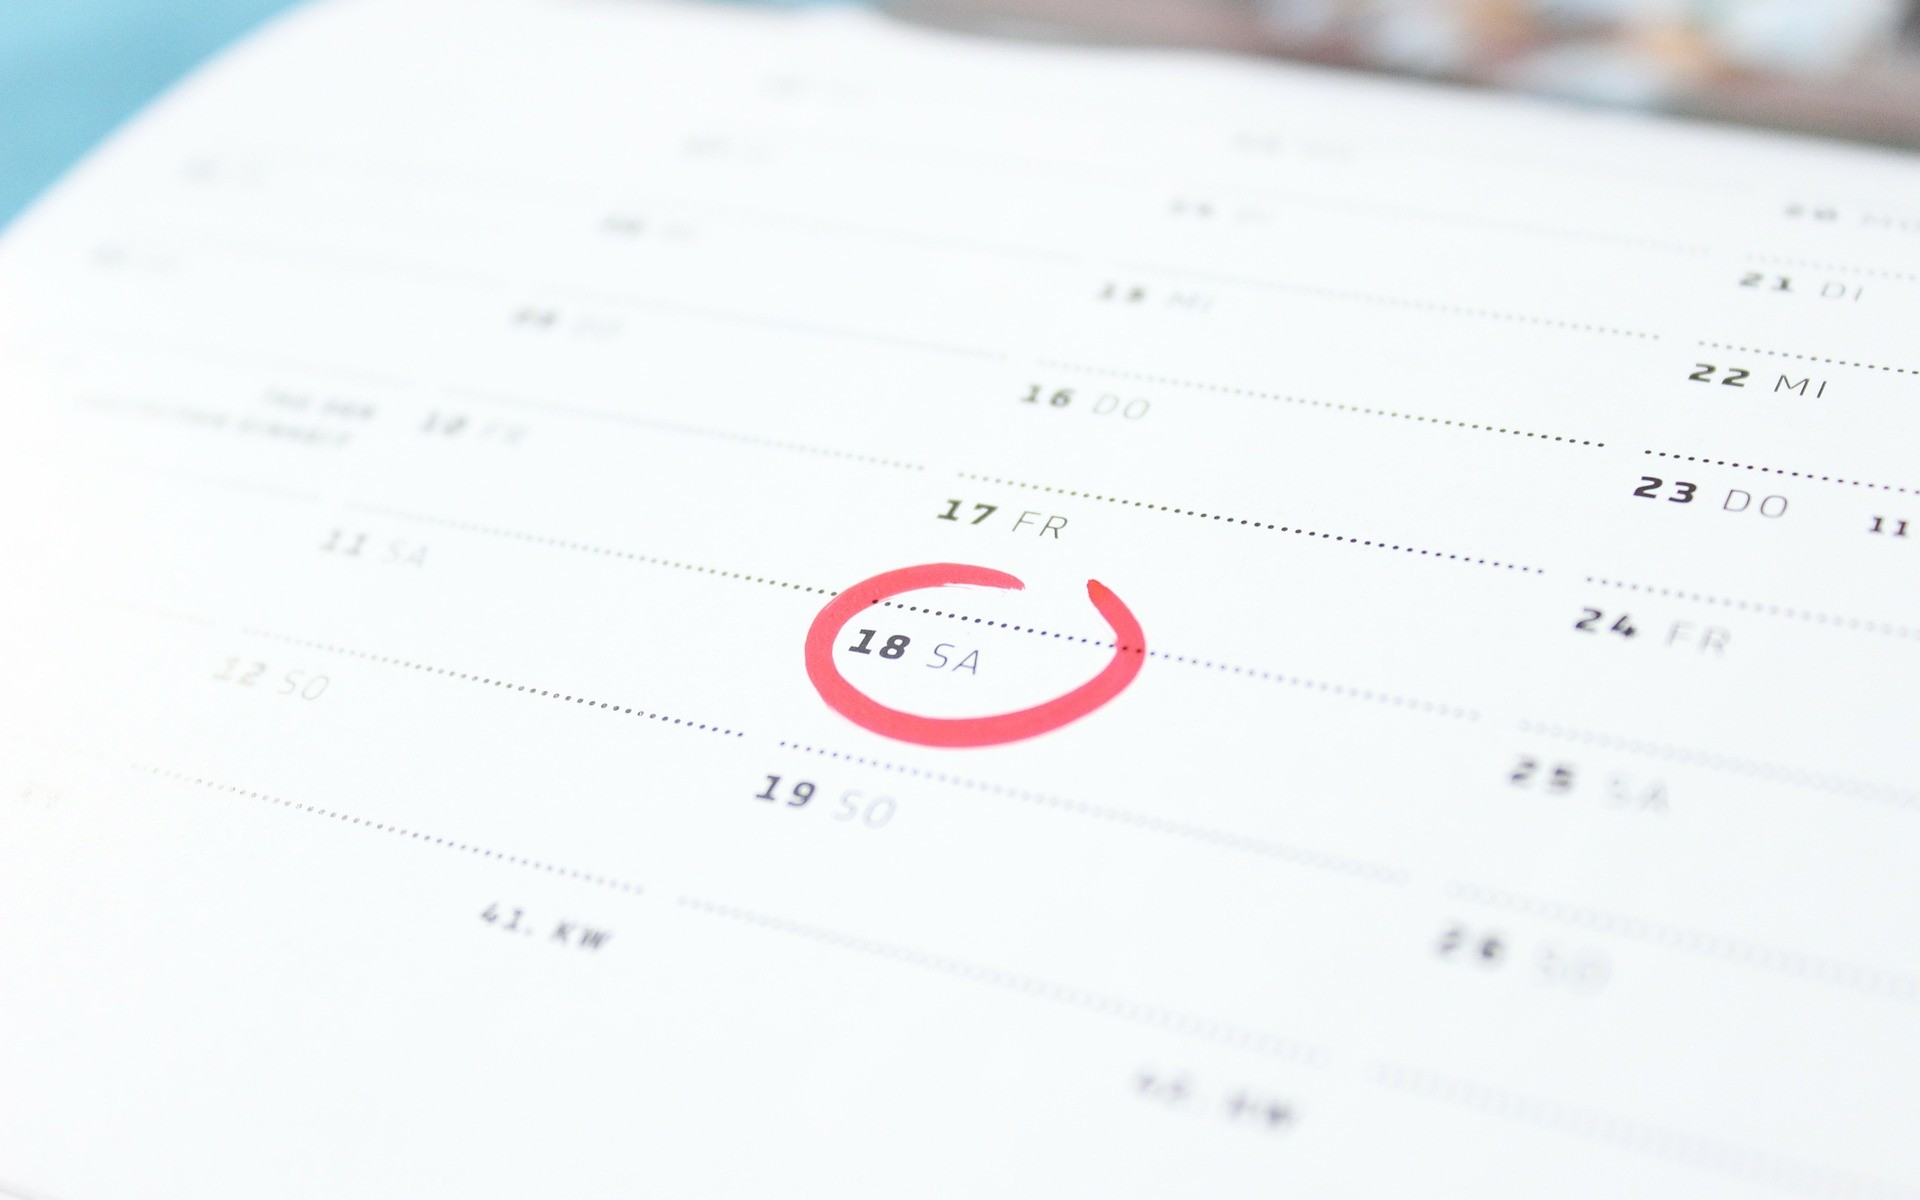 Disable Dates In Datepicker - DZone Web Dev